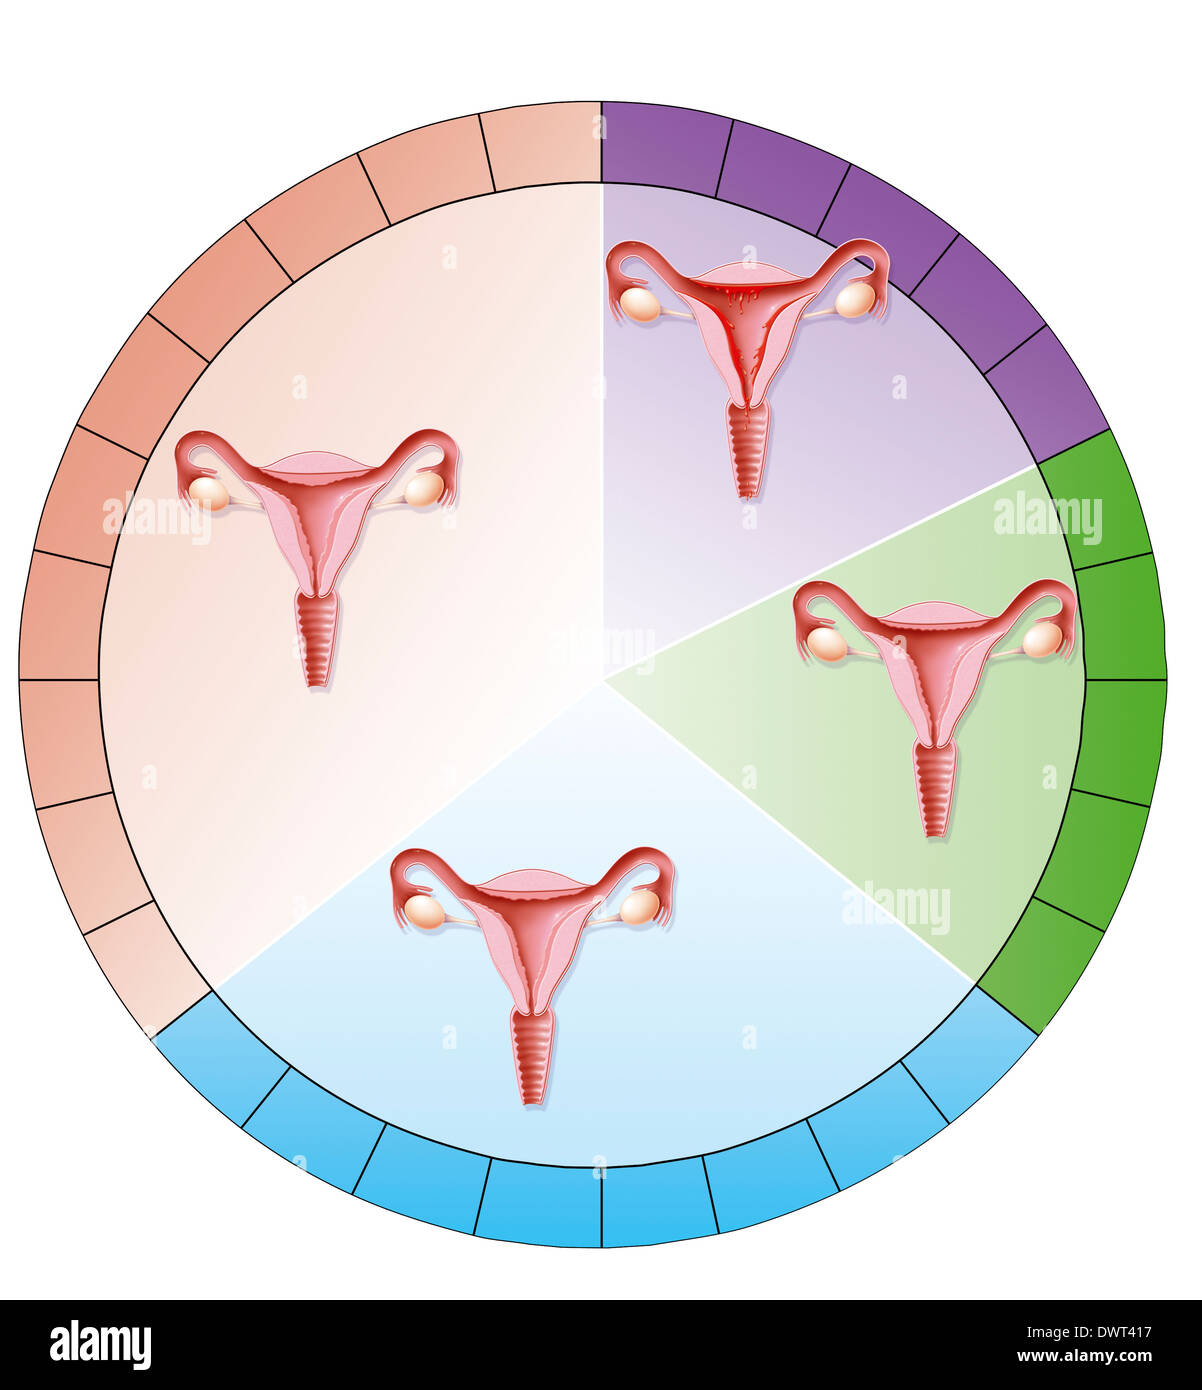 menstrual cycle diagram with ovulation 1988 ford ranger wiring drawing stock photo royalty free image